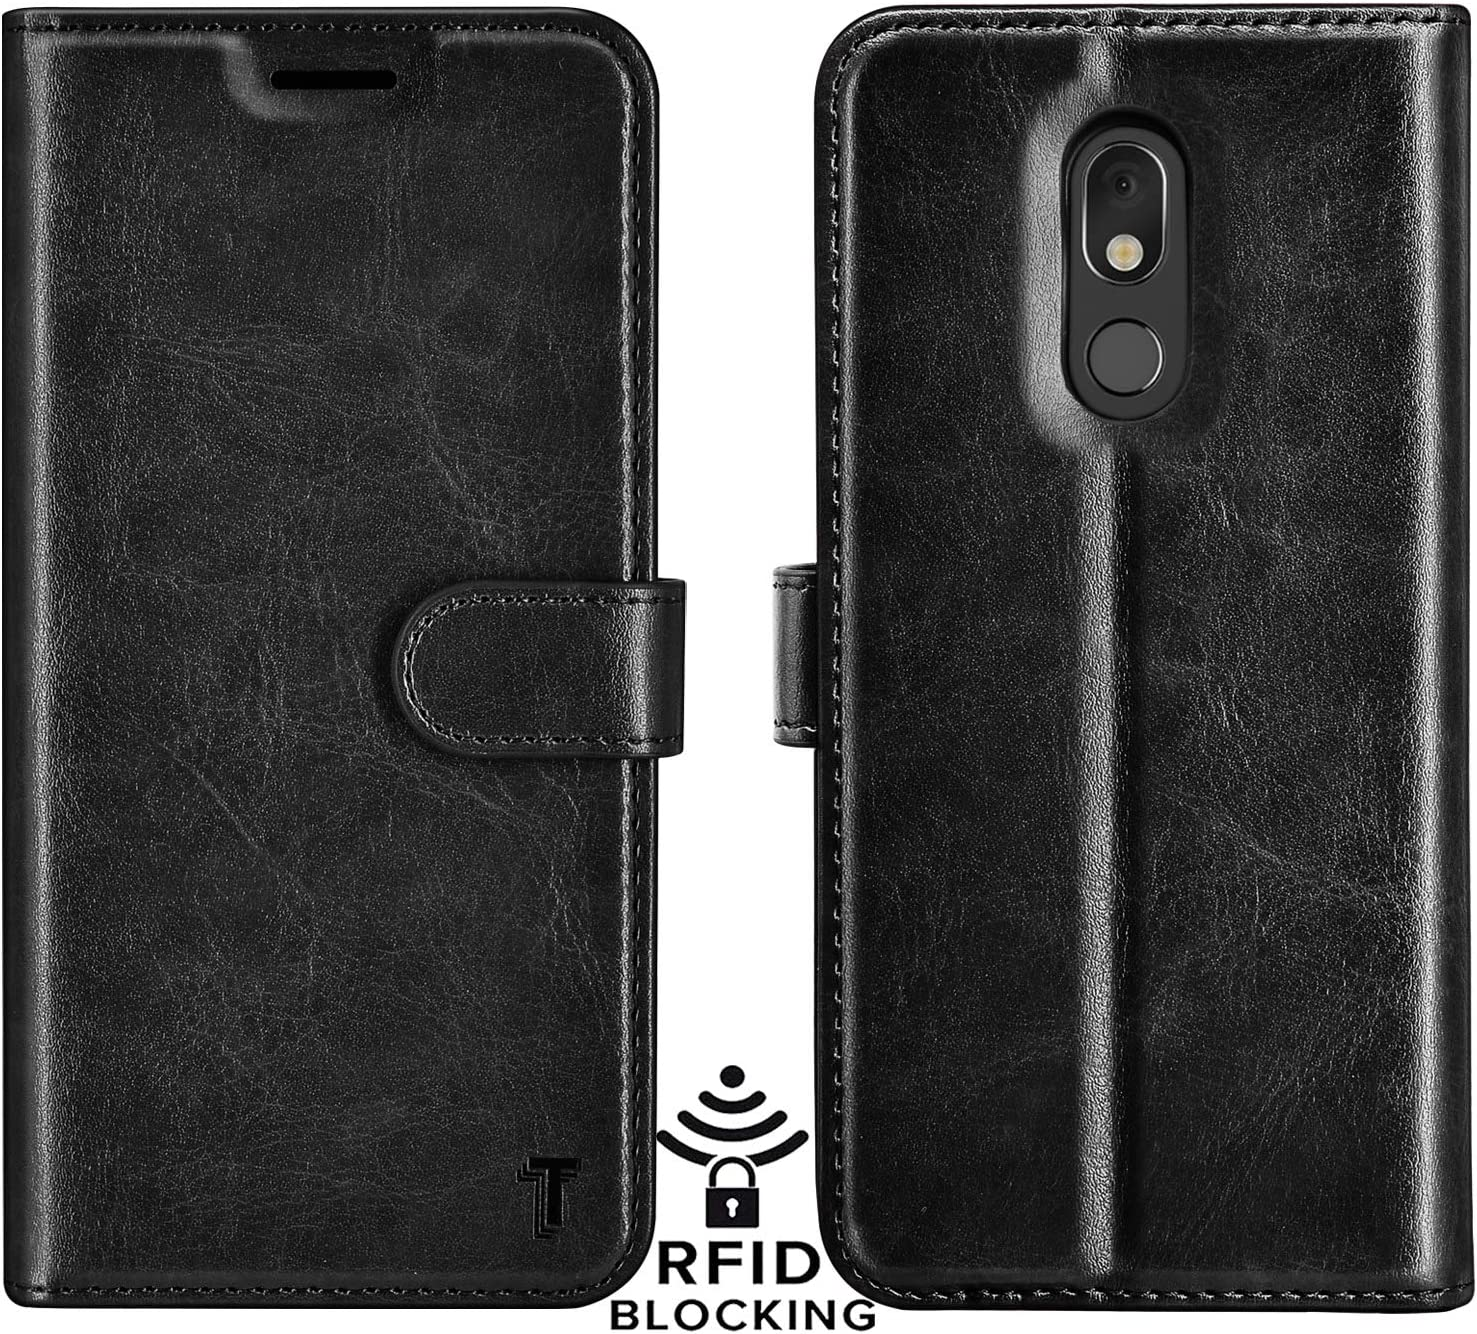 Njjex LG Stylo 5 Case, LG Stylo 5 Wallet Case, LG Stylo 5V/Stylo 5X/Stylo 5 Plus Case, RFID Blocking PU Leather Folio Flip ID Credit Card Slots Holder [Kickstand] Magnetic Closure Phone Cover [Black]